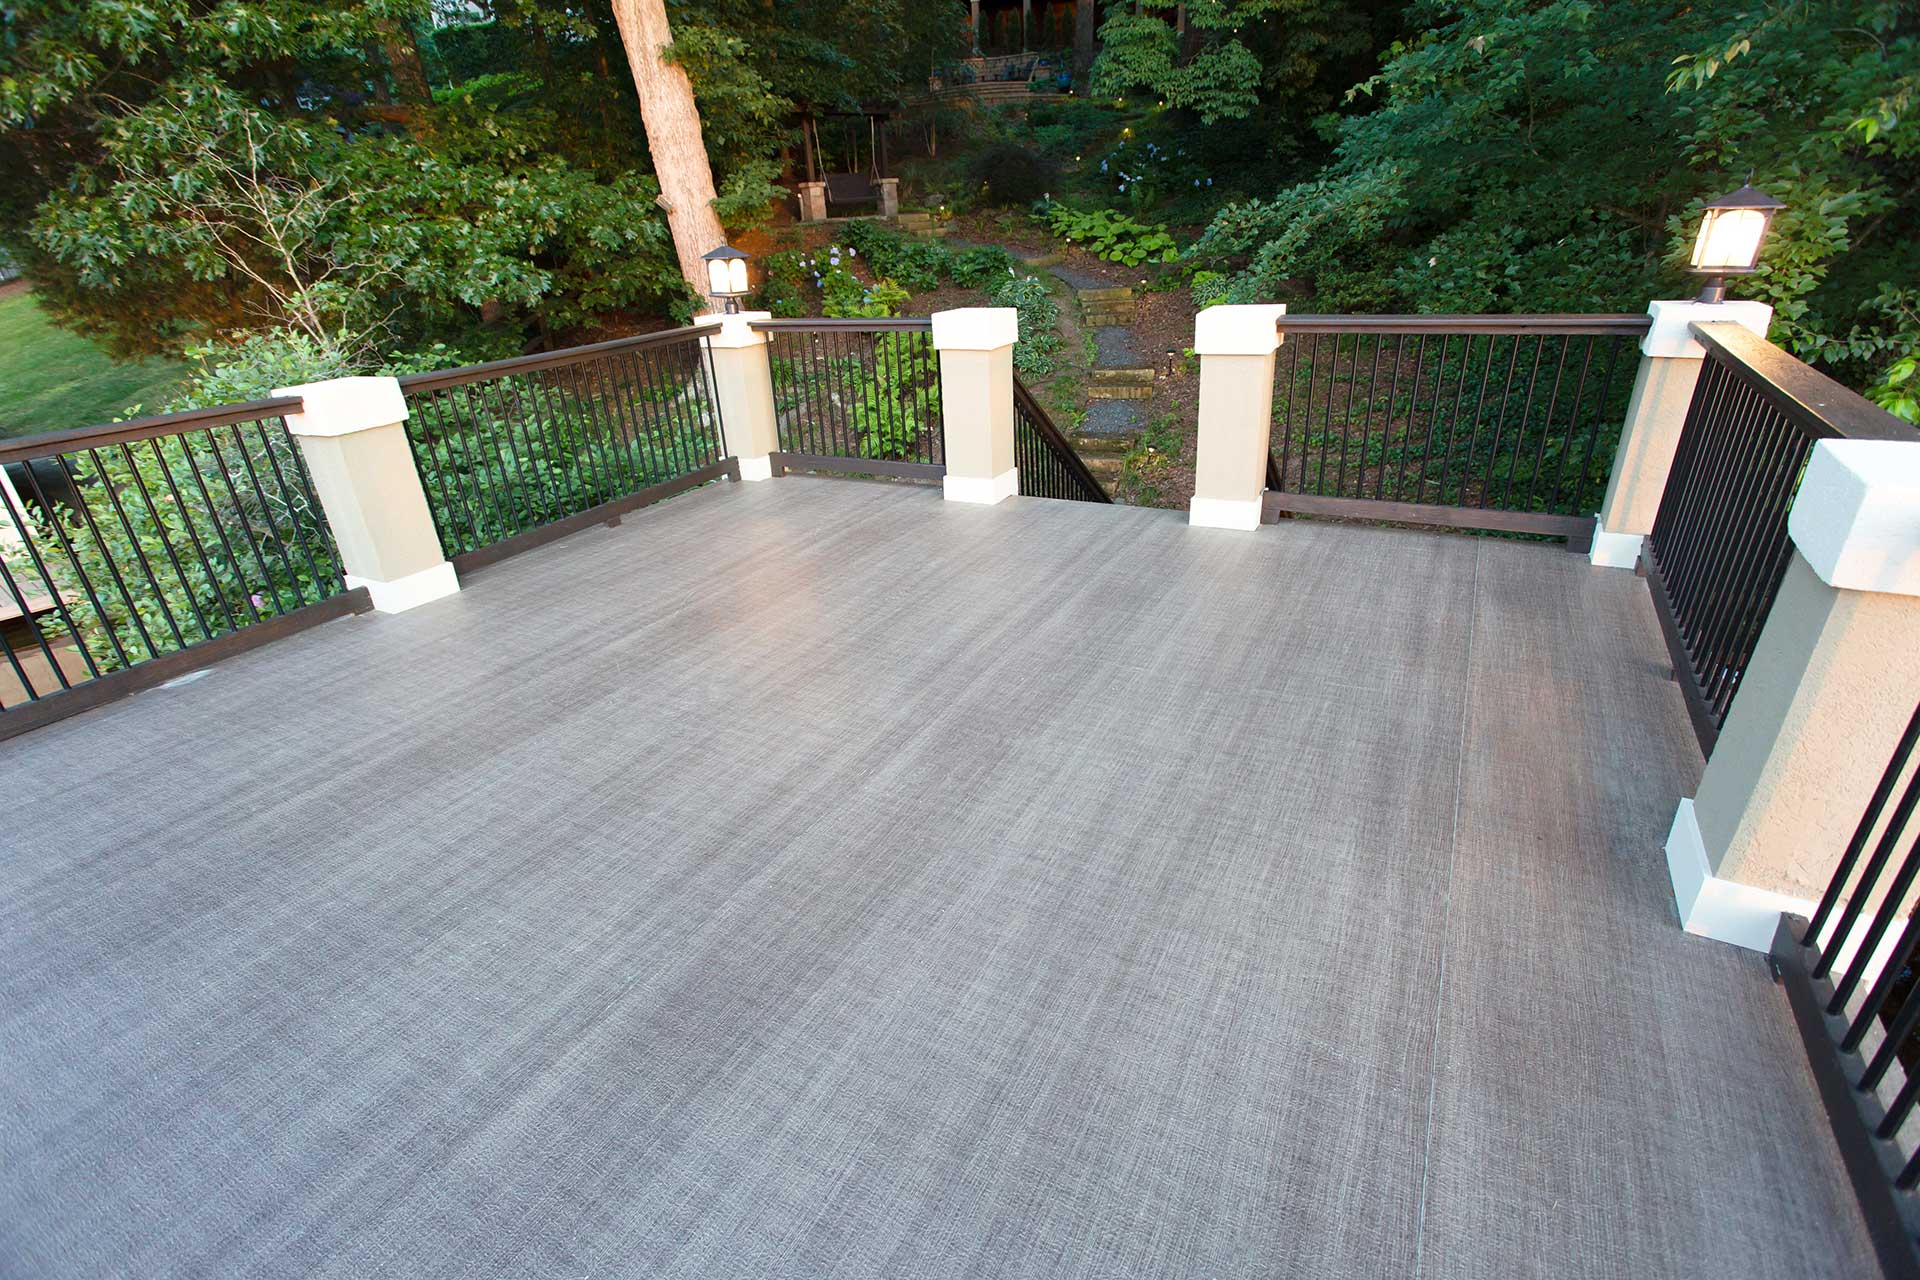 Vacation Properties Vinyl Deck Images Duradek